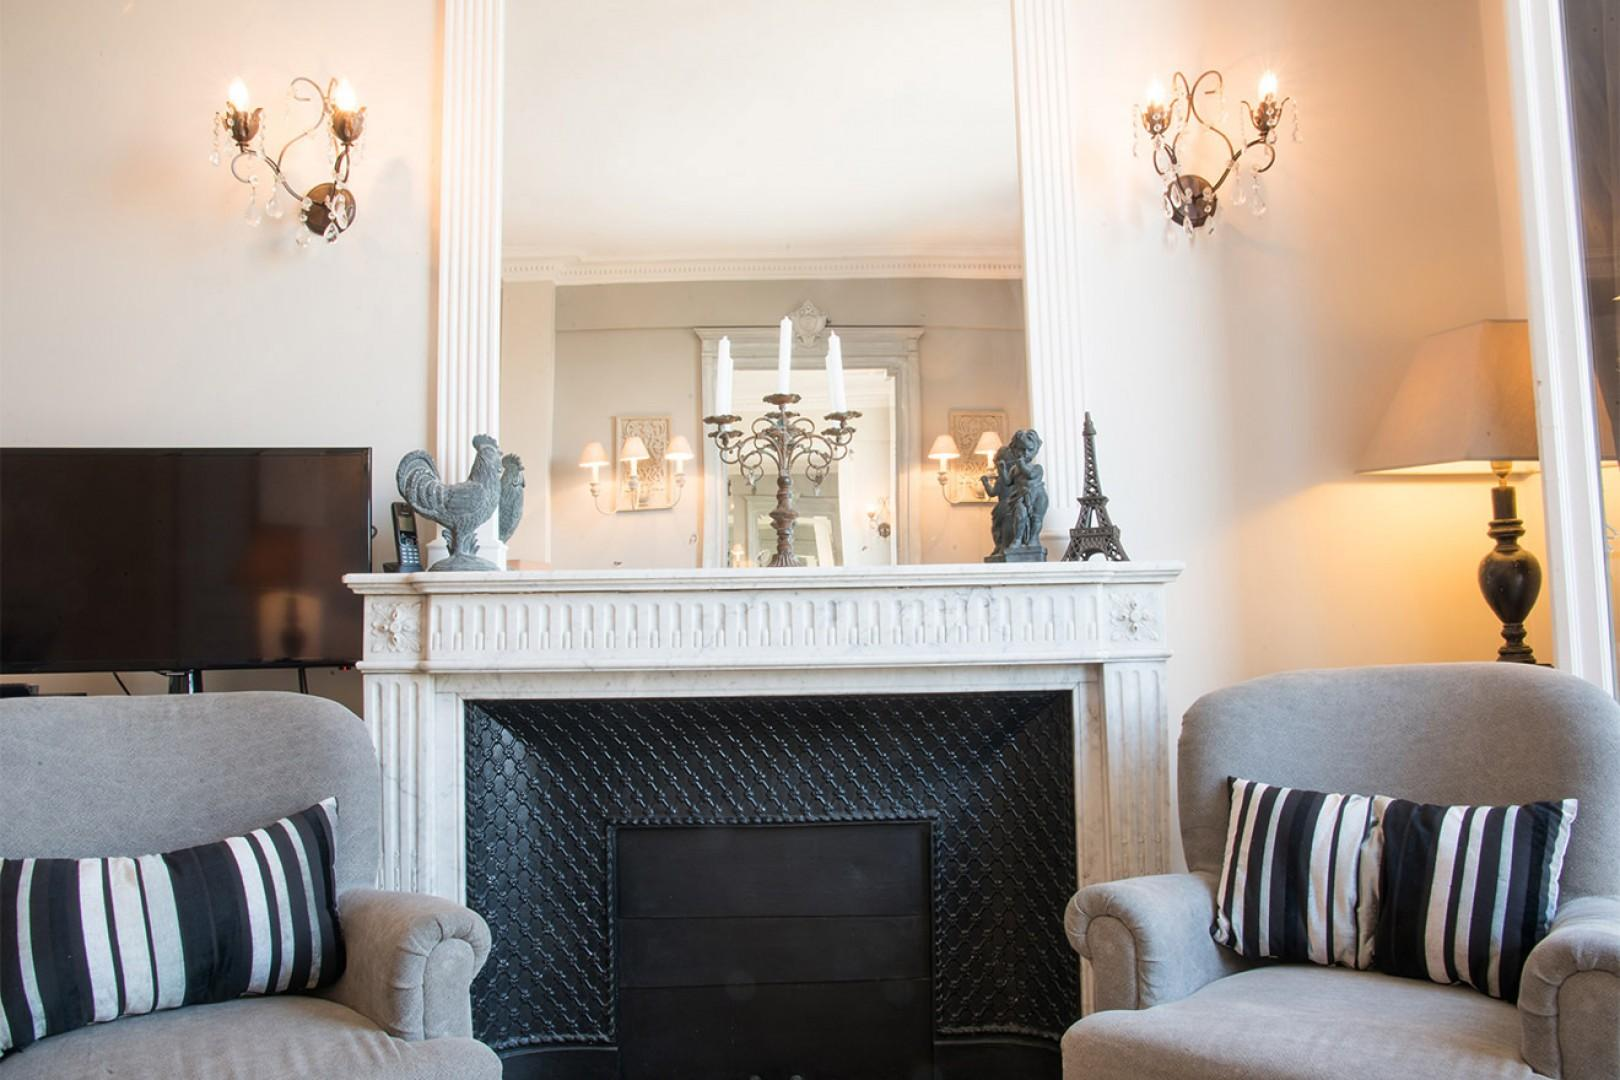 There is ample seating in the living room for all your guests.